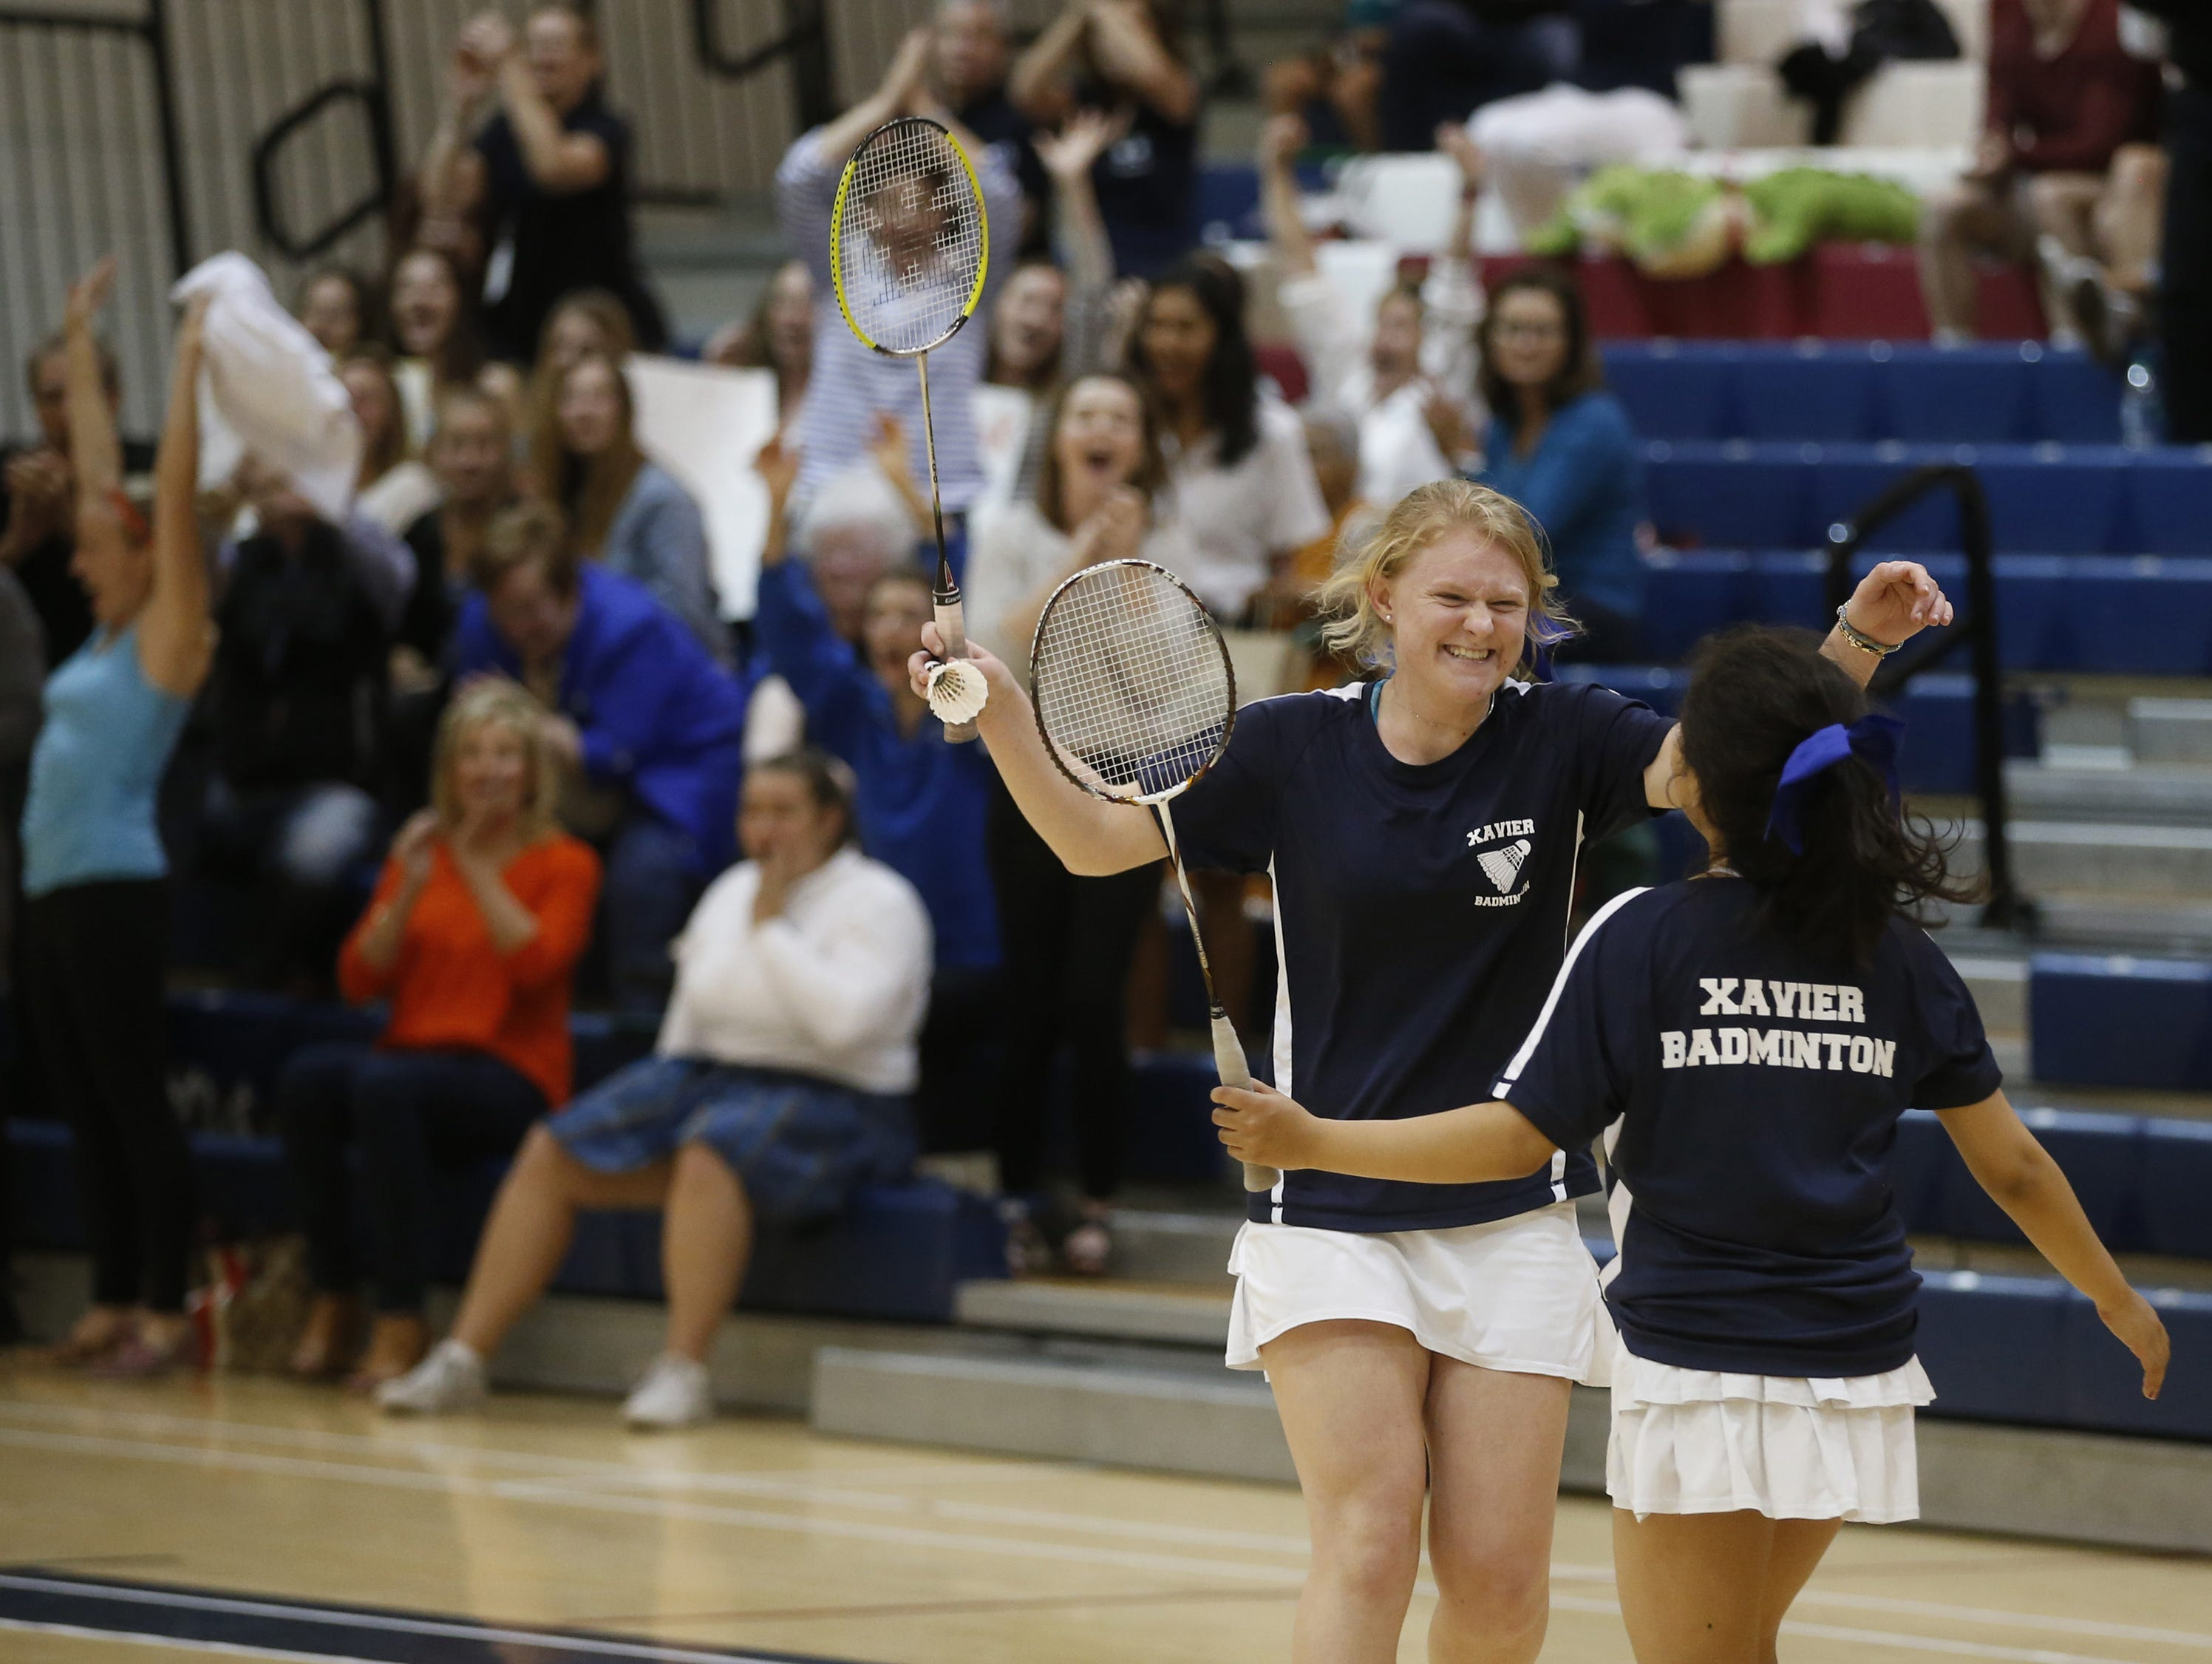 Xavier Katie Russell, left, and Kirielle Singarajah celebrate winning their double match against Mesa Red Mountain during the badminton team state championship at Perry High School on October 30, 2015.